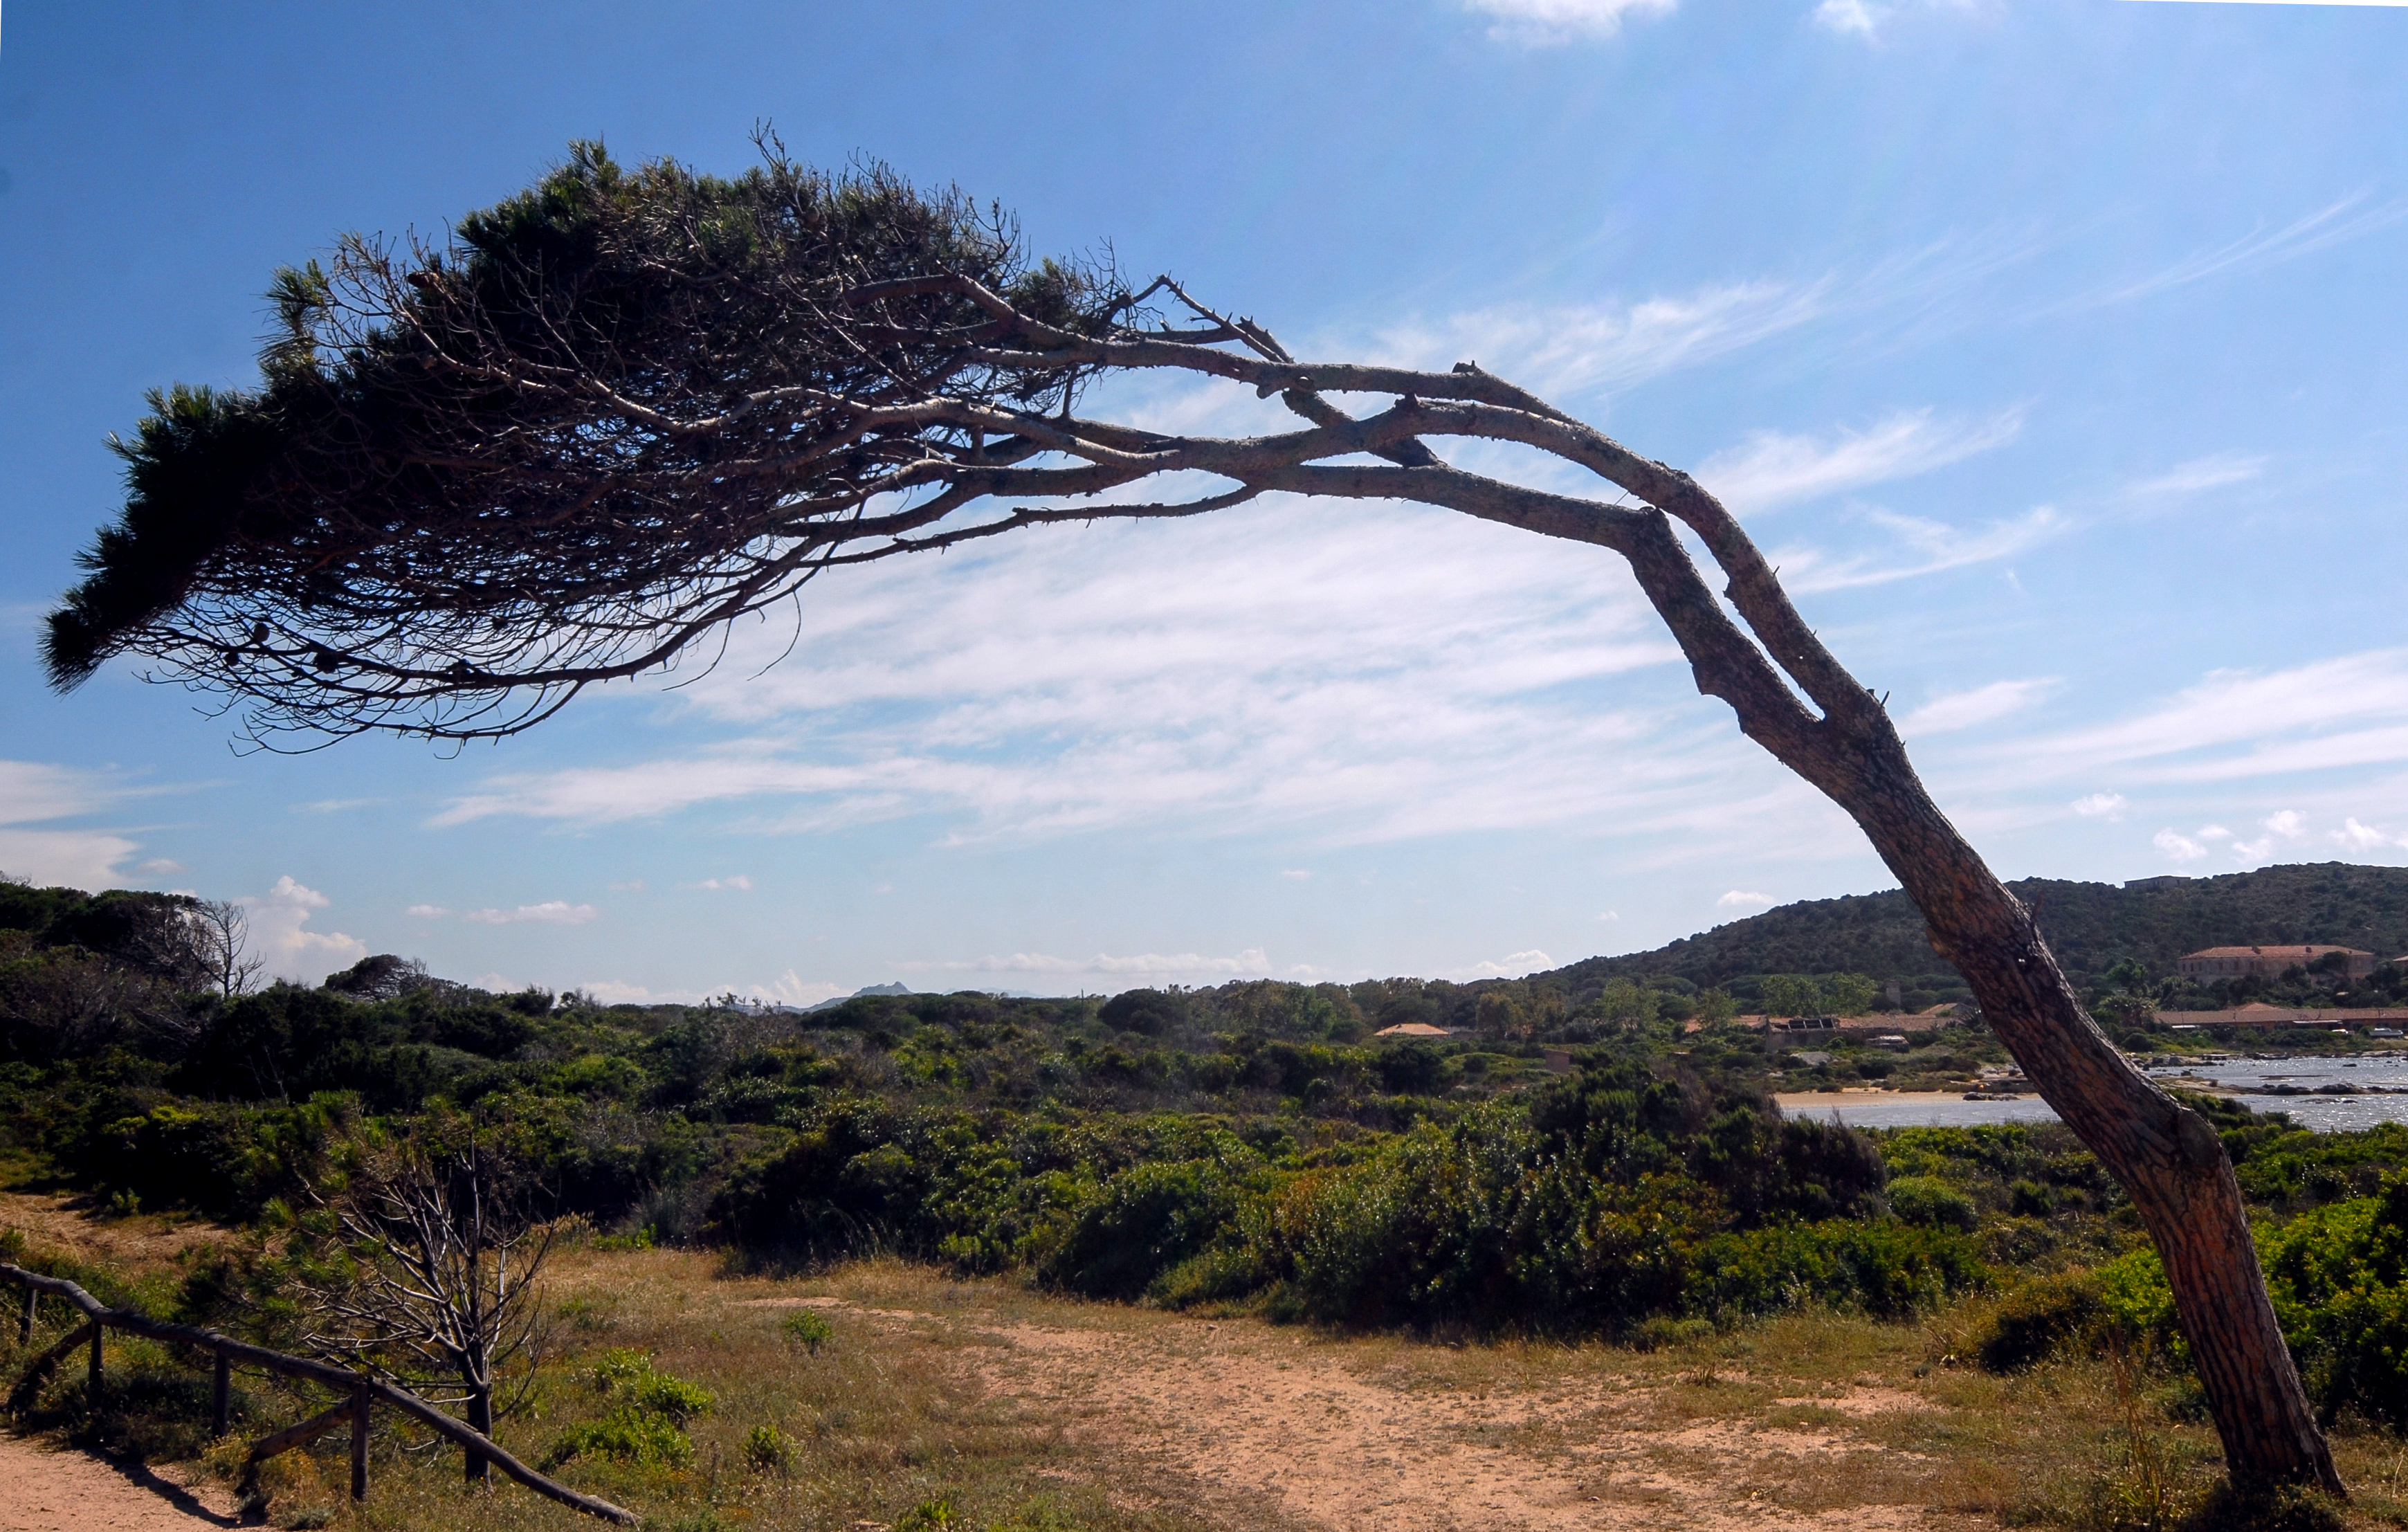 Photograph of a wind-swept tree